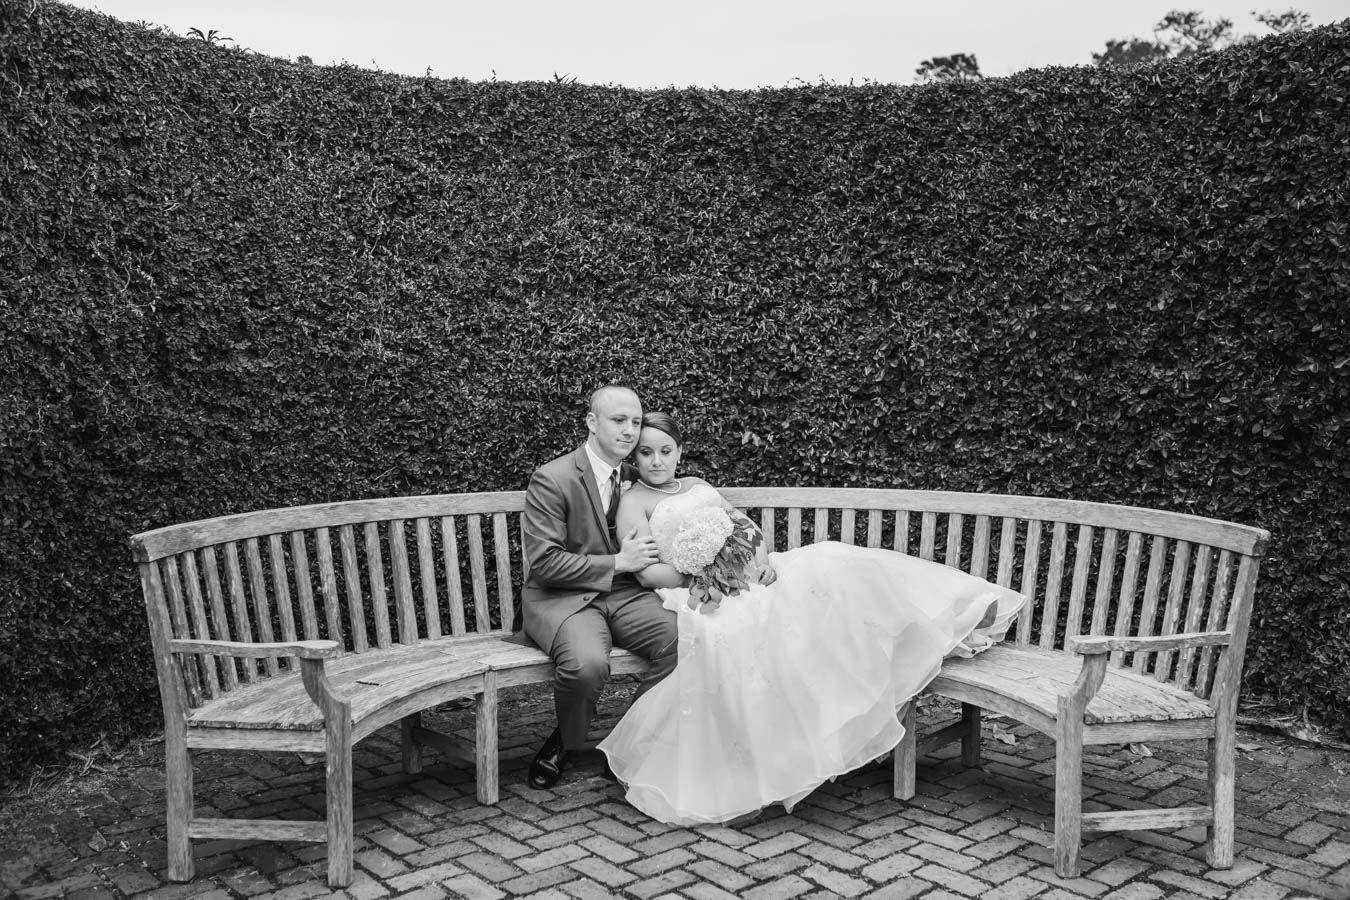 Black and White photo of the bride and groom